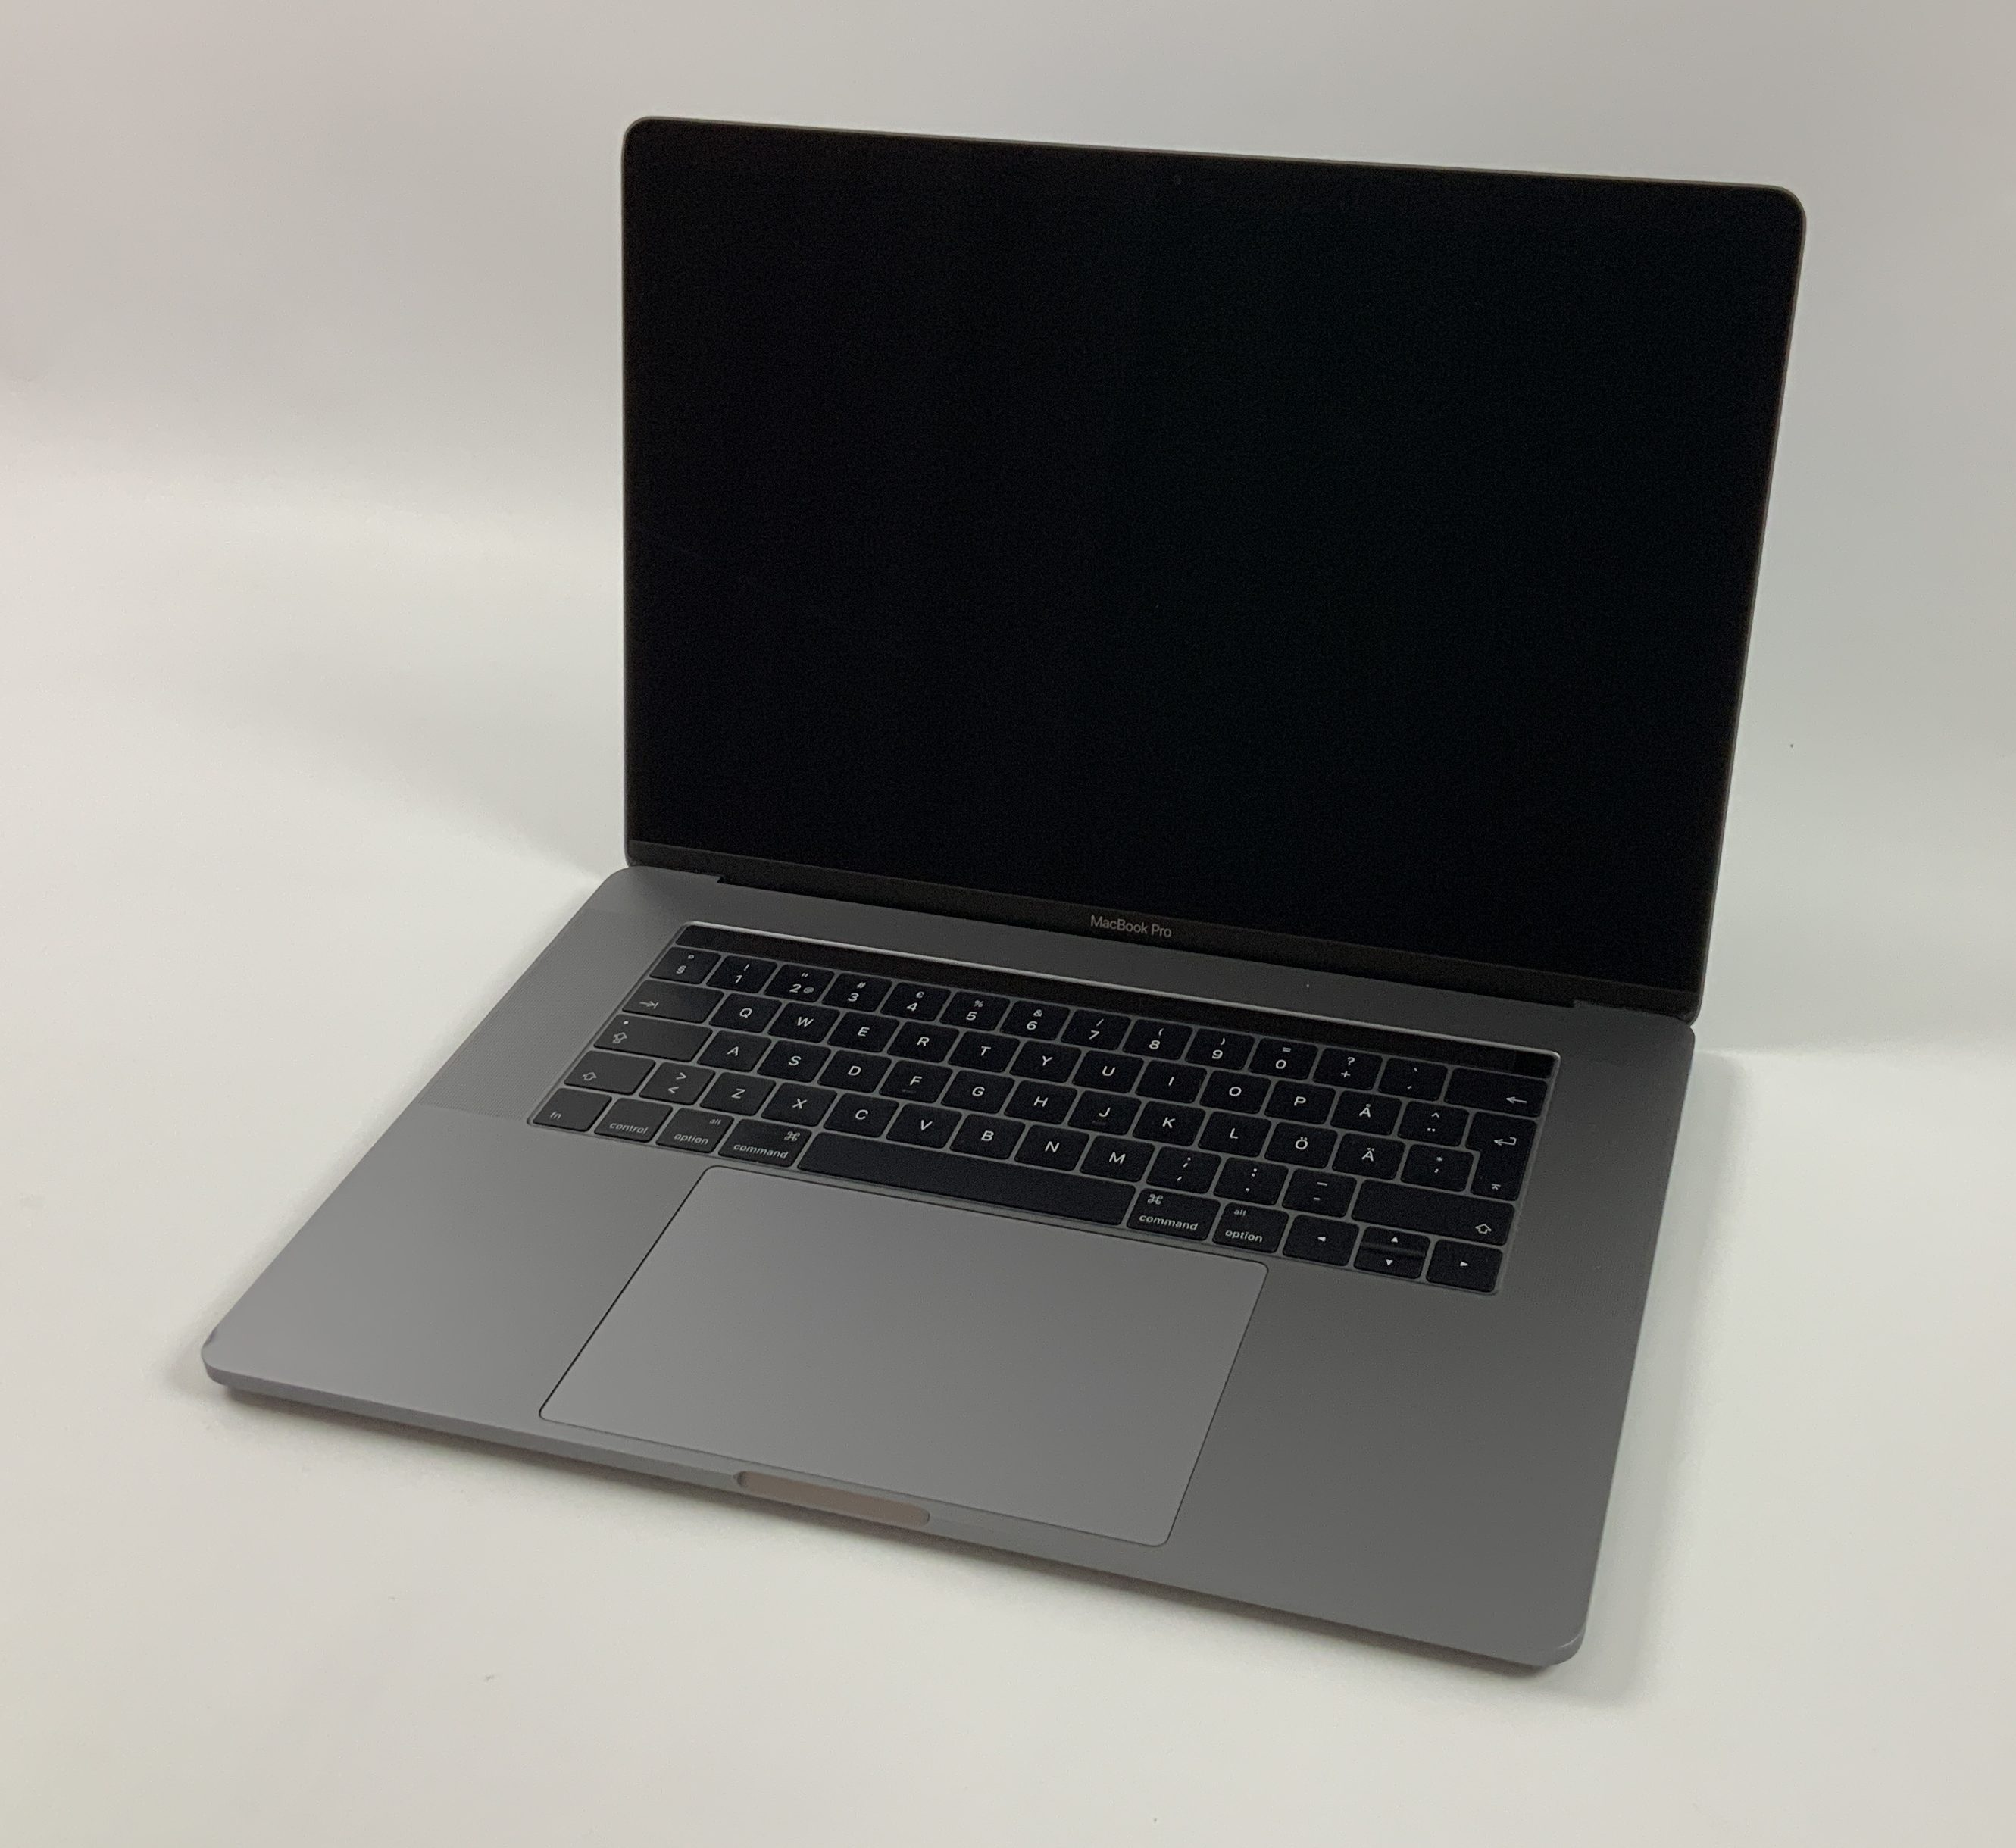 "MacBook Pro 15"" Touch Bar Late 2016 (Intel Quad-Core i7 2.6 GHz 16 GB RAM 512 GB SSD), Space Gray, Intel Quad-Core i7 2.6 GHz, 16 GB RAM, 512 GB SSD, immagine 1"